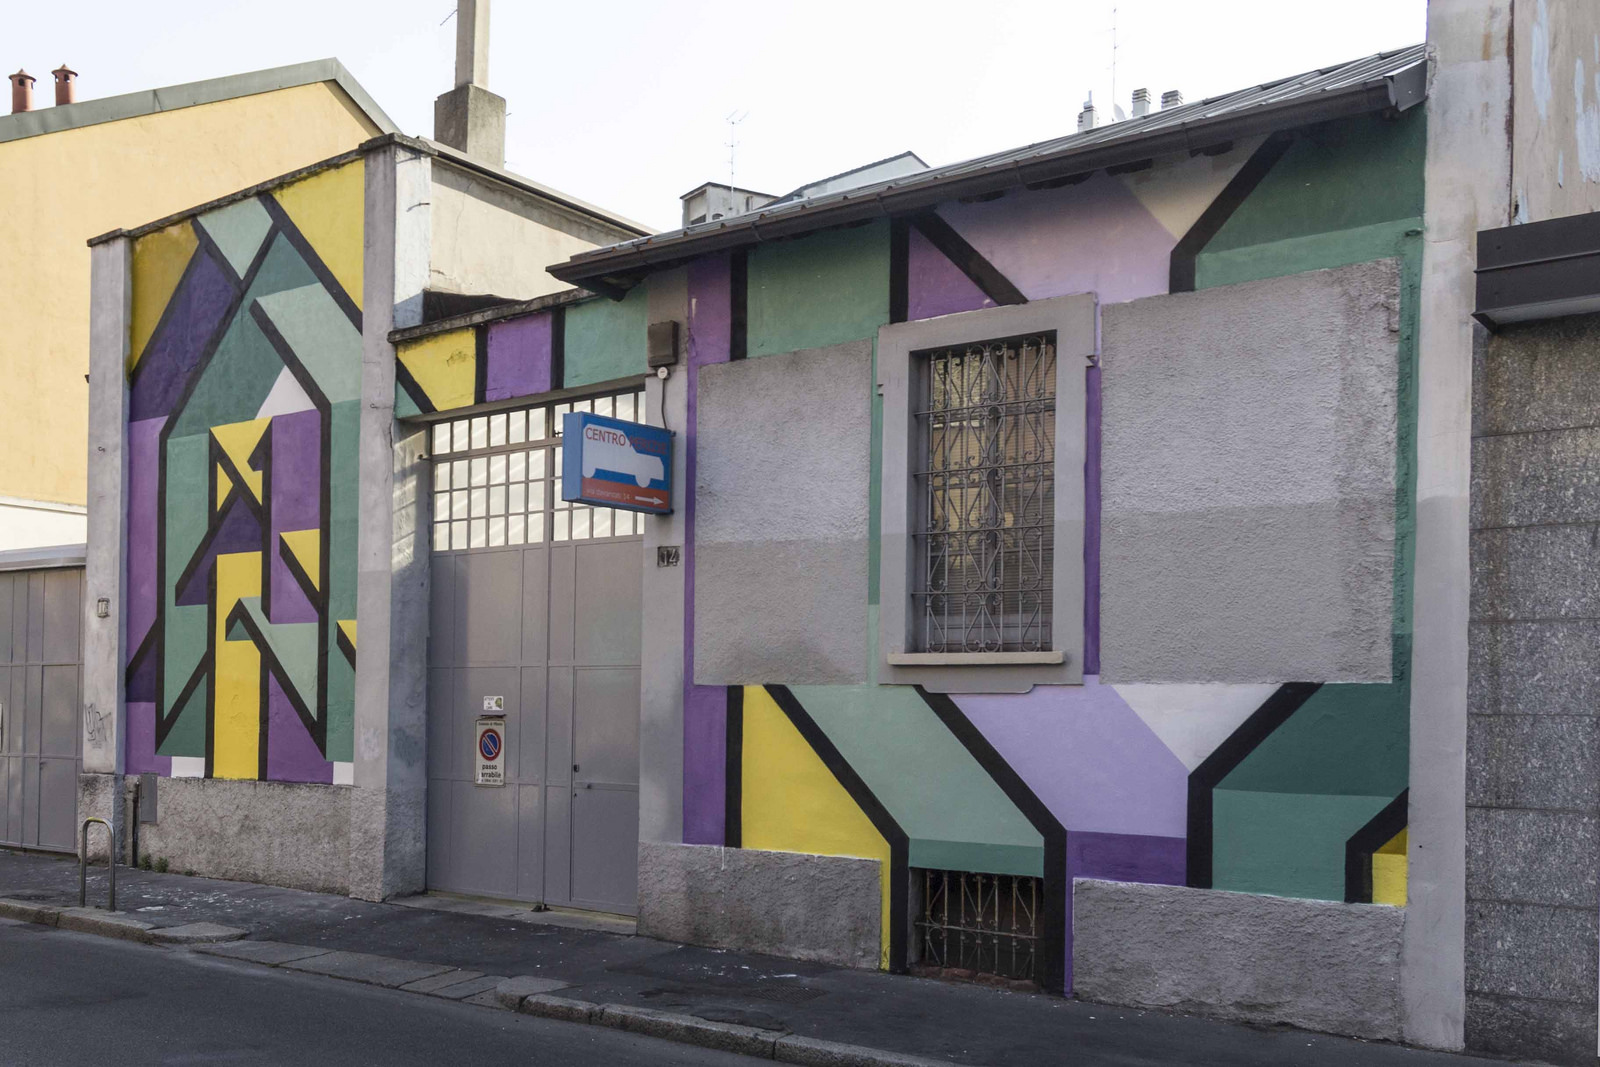 joys-new-mural-in-dergano-milano-09